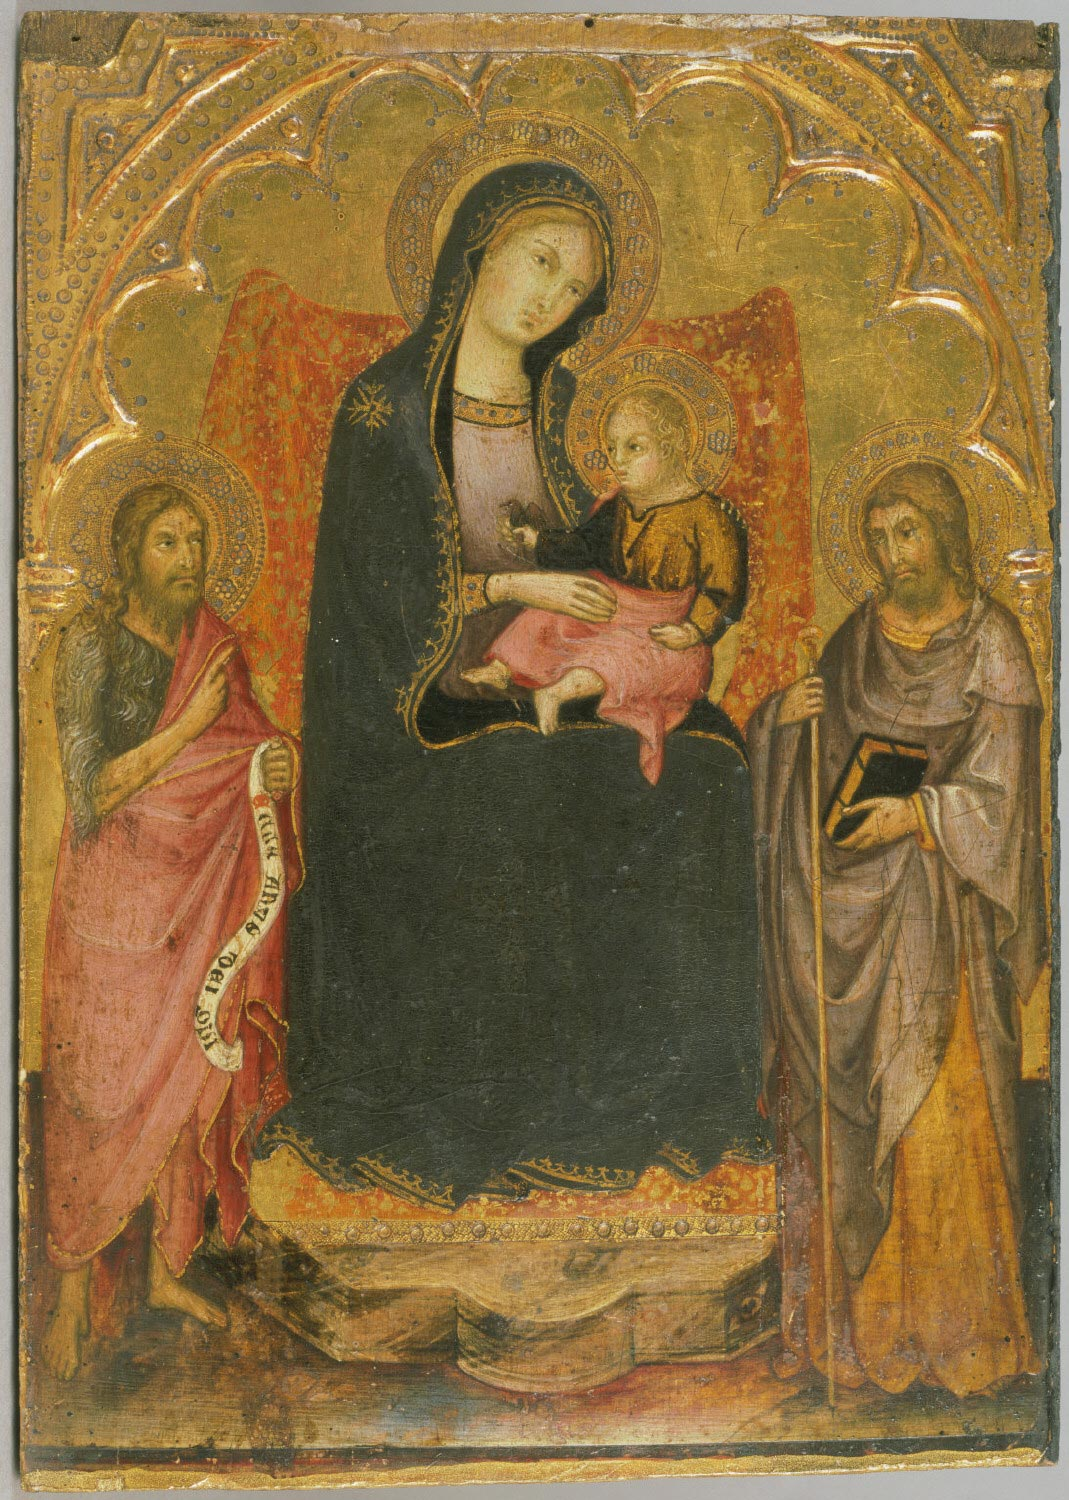 Virgin and Child Enthroned with Saints John the Baptist and James Major